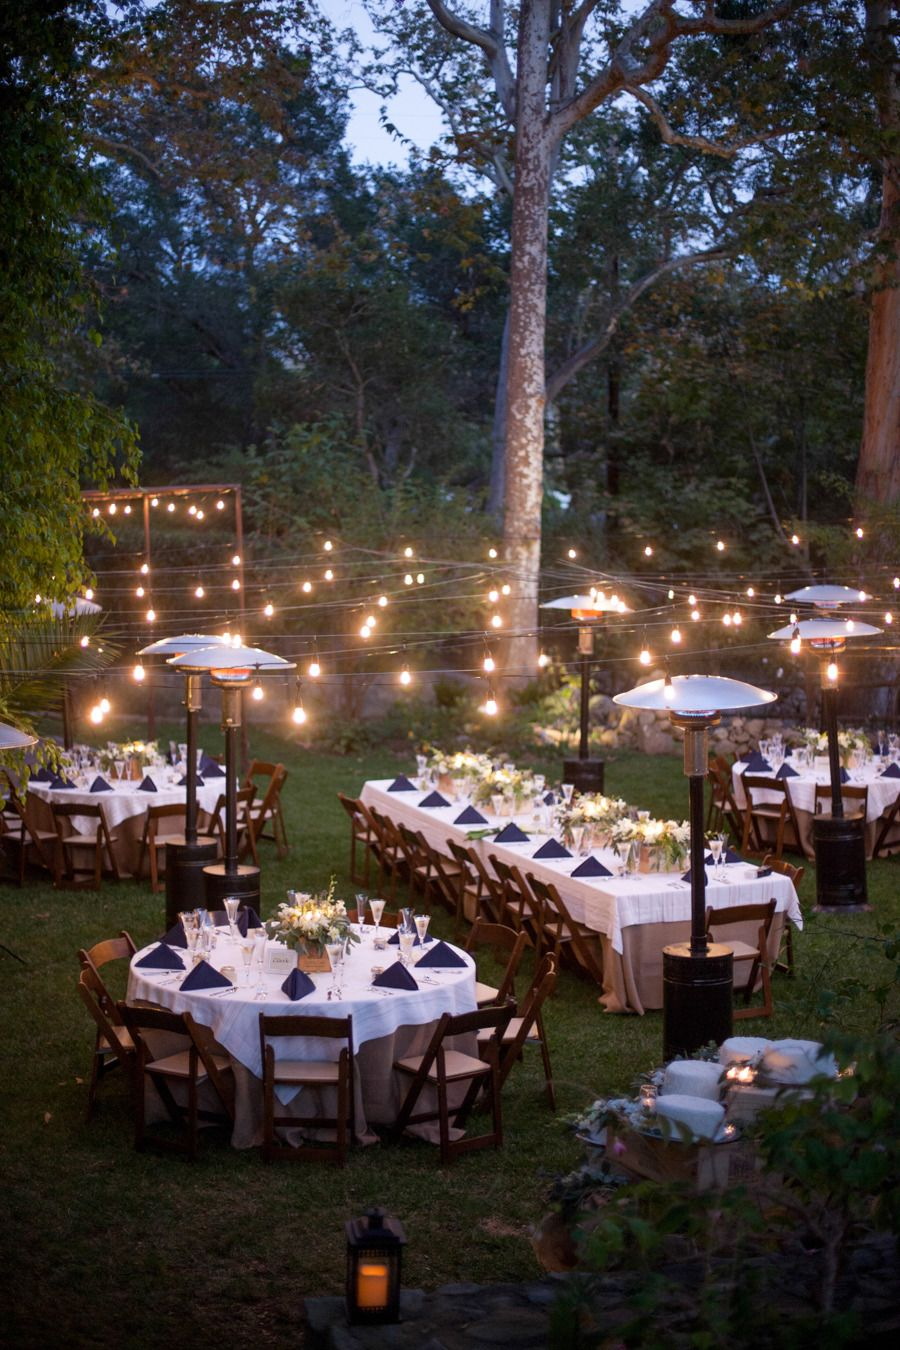 Gallery of montecito estate wedding backyard – backyard wedding reception decorations lighting | 17 coolest diy wedding decorations design listicle, outdoor wedding reception decoration ideas weddings by lilly, wedding ideas 30 ways to use candles for your big, 20 beautiful wedding lanterns with hanging on lights, outdoor wedding lighting ideas from real celebrations